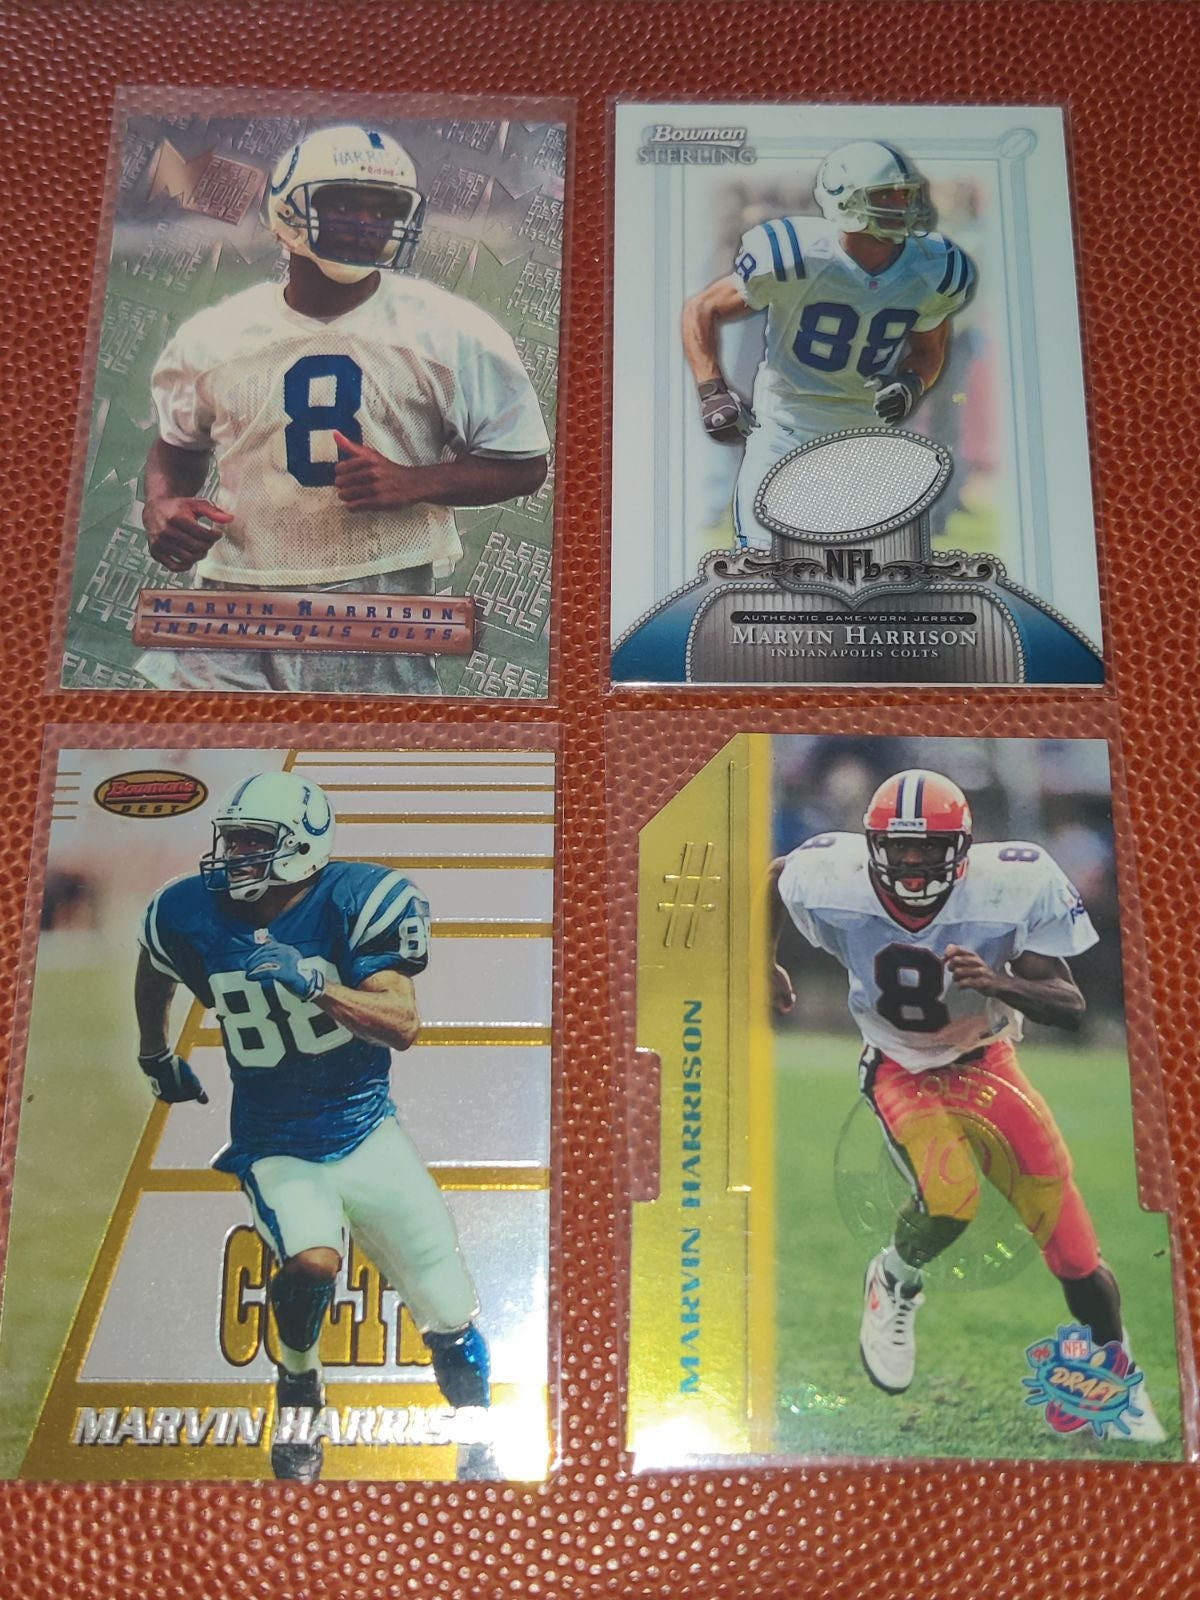 Marvin Harrison Rookie and jersey cards